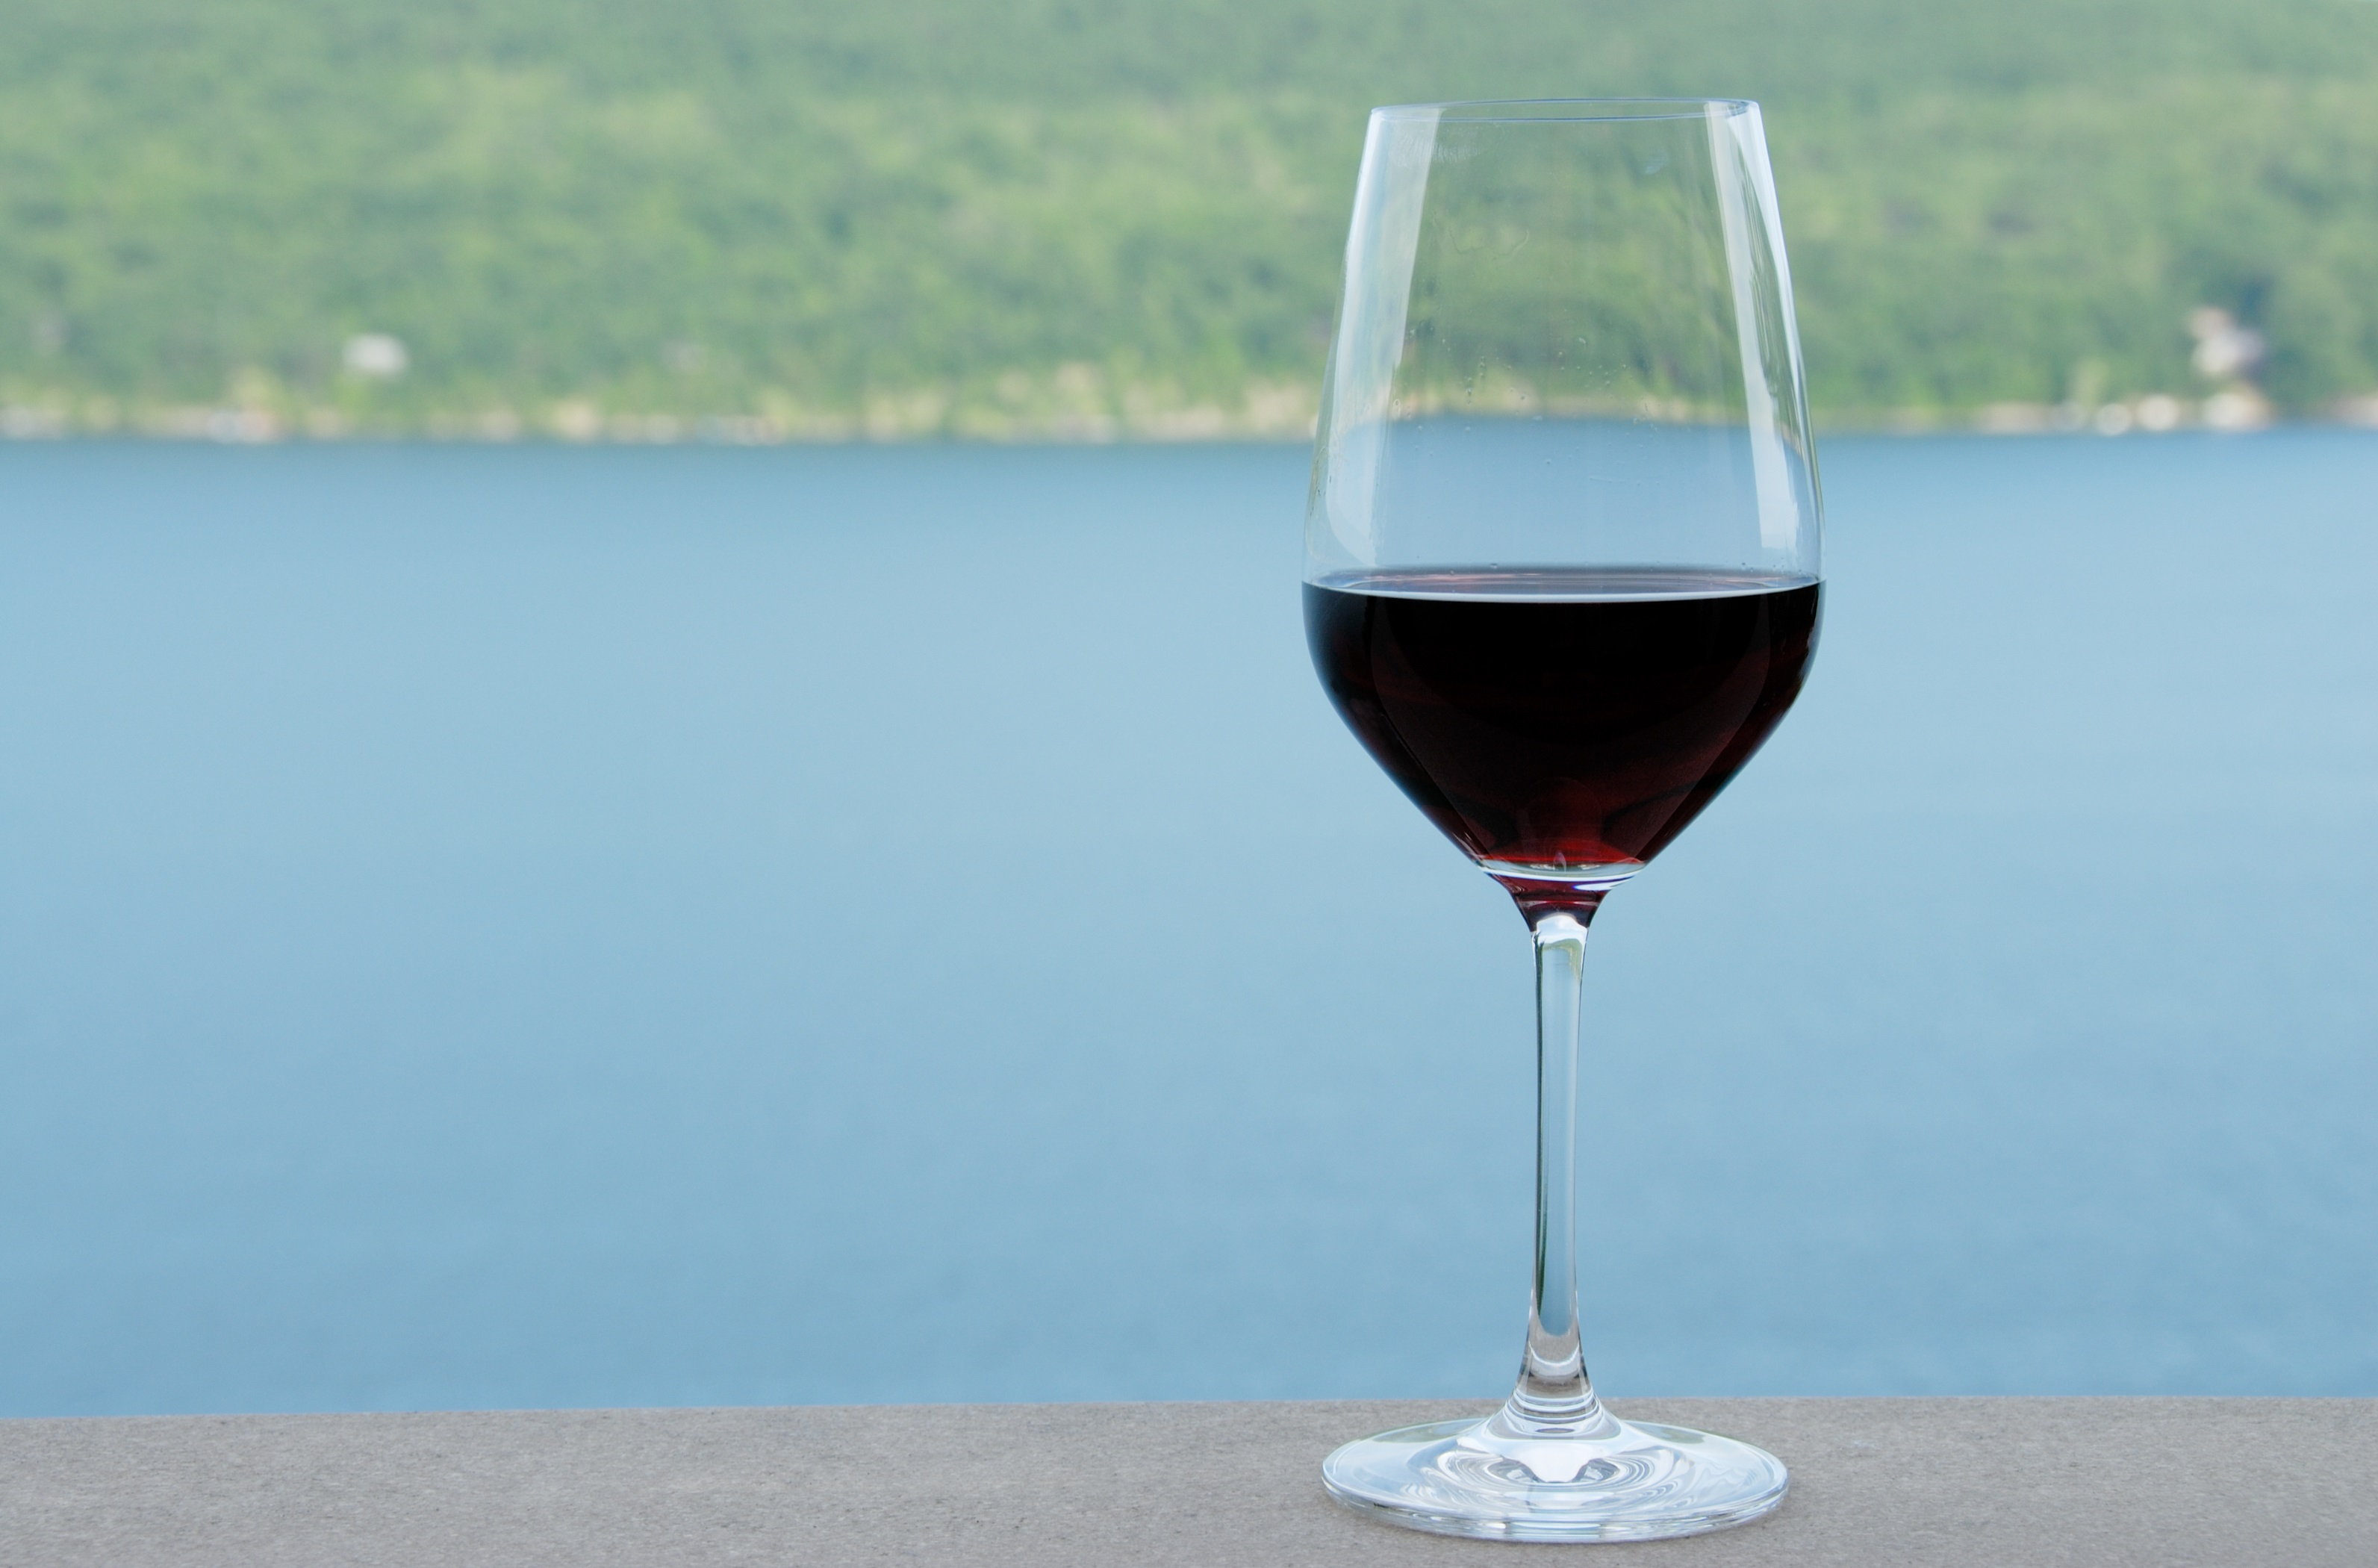 95248402Glass_of_Wine_by_the_Lake_Sp5JCtg9cRLsRzHcoG-QLYs18q0ABlZBh